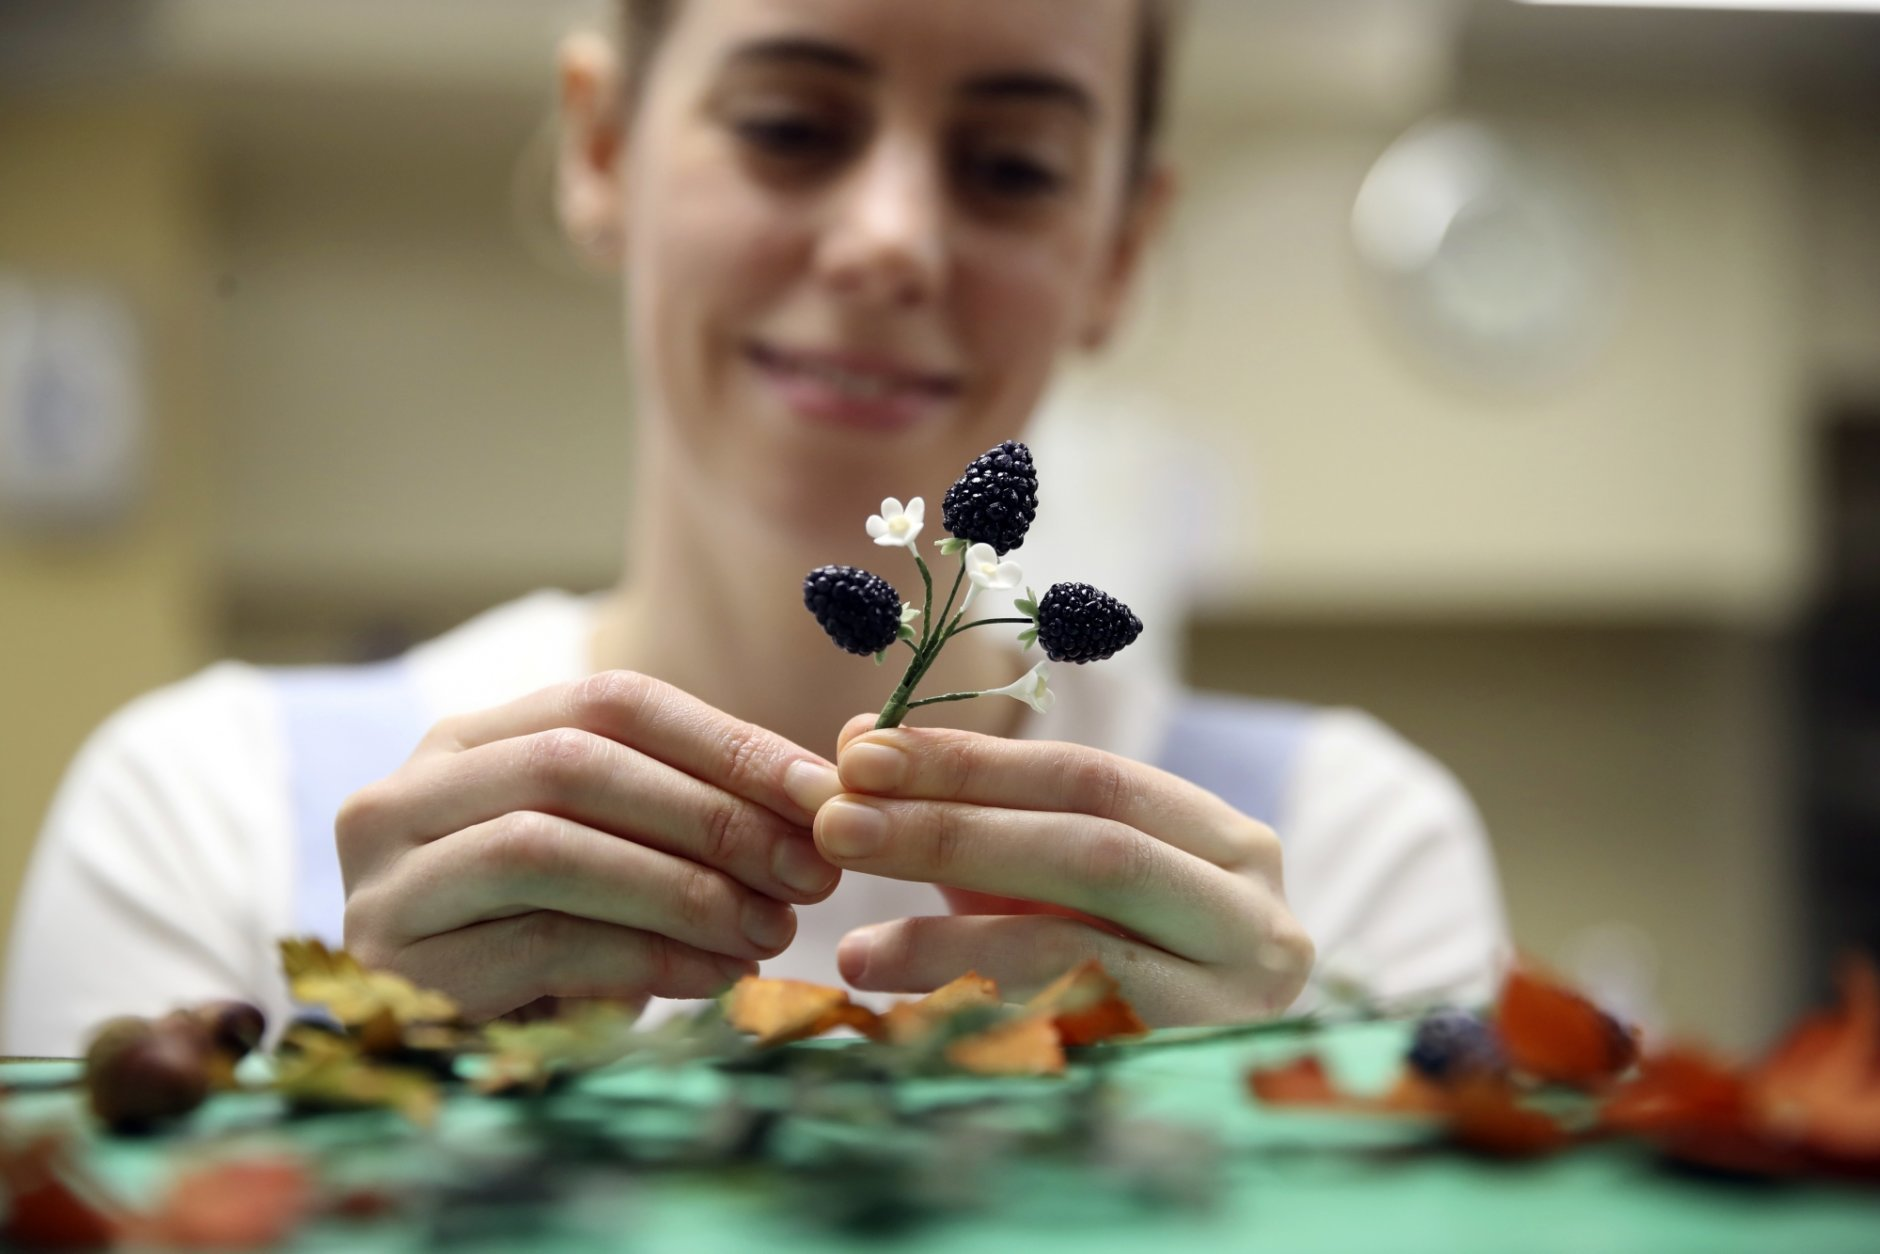 Baker Sophie Cabot puts the finishing touches to cake decorations for the red velvet and chocolate wedding cake for Britian's Princess Eugenie and Mr Brooksbank, in the kitchens at Buckingham Palace, London, Wednesday Oct. 10, 2018. The granddaughter of Queen Elizabeth II is due to marry liquor company executive Jack Brooksbank on Friday in St. George's Chapel at Windsor Castle. (Chris Jackson/Pool via AP)